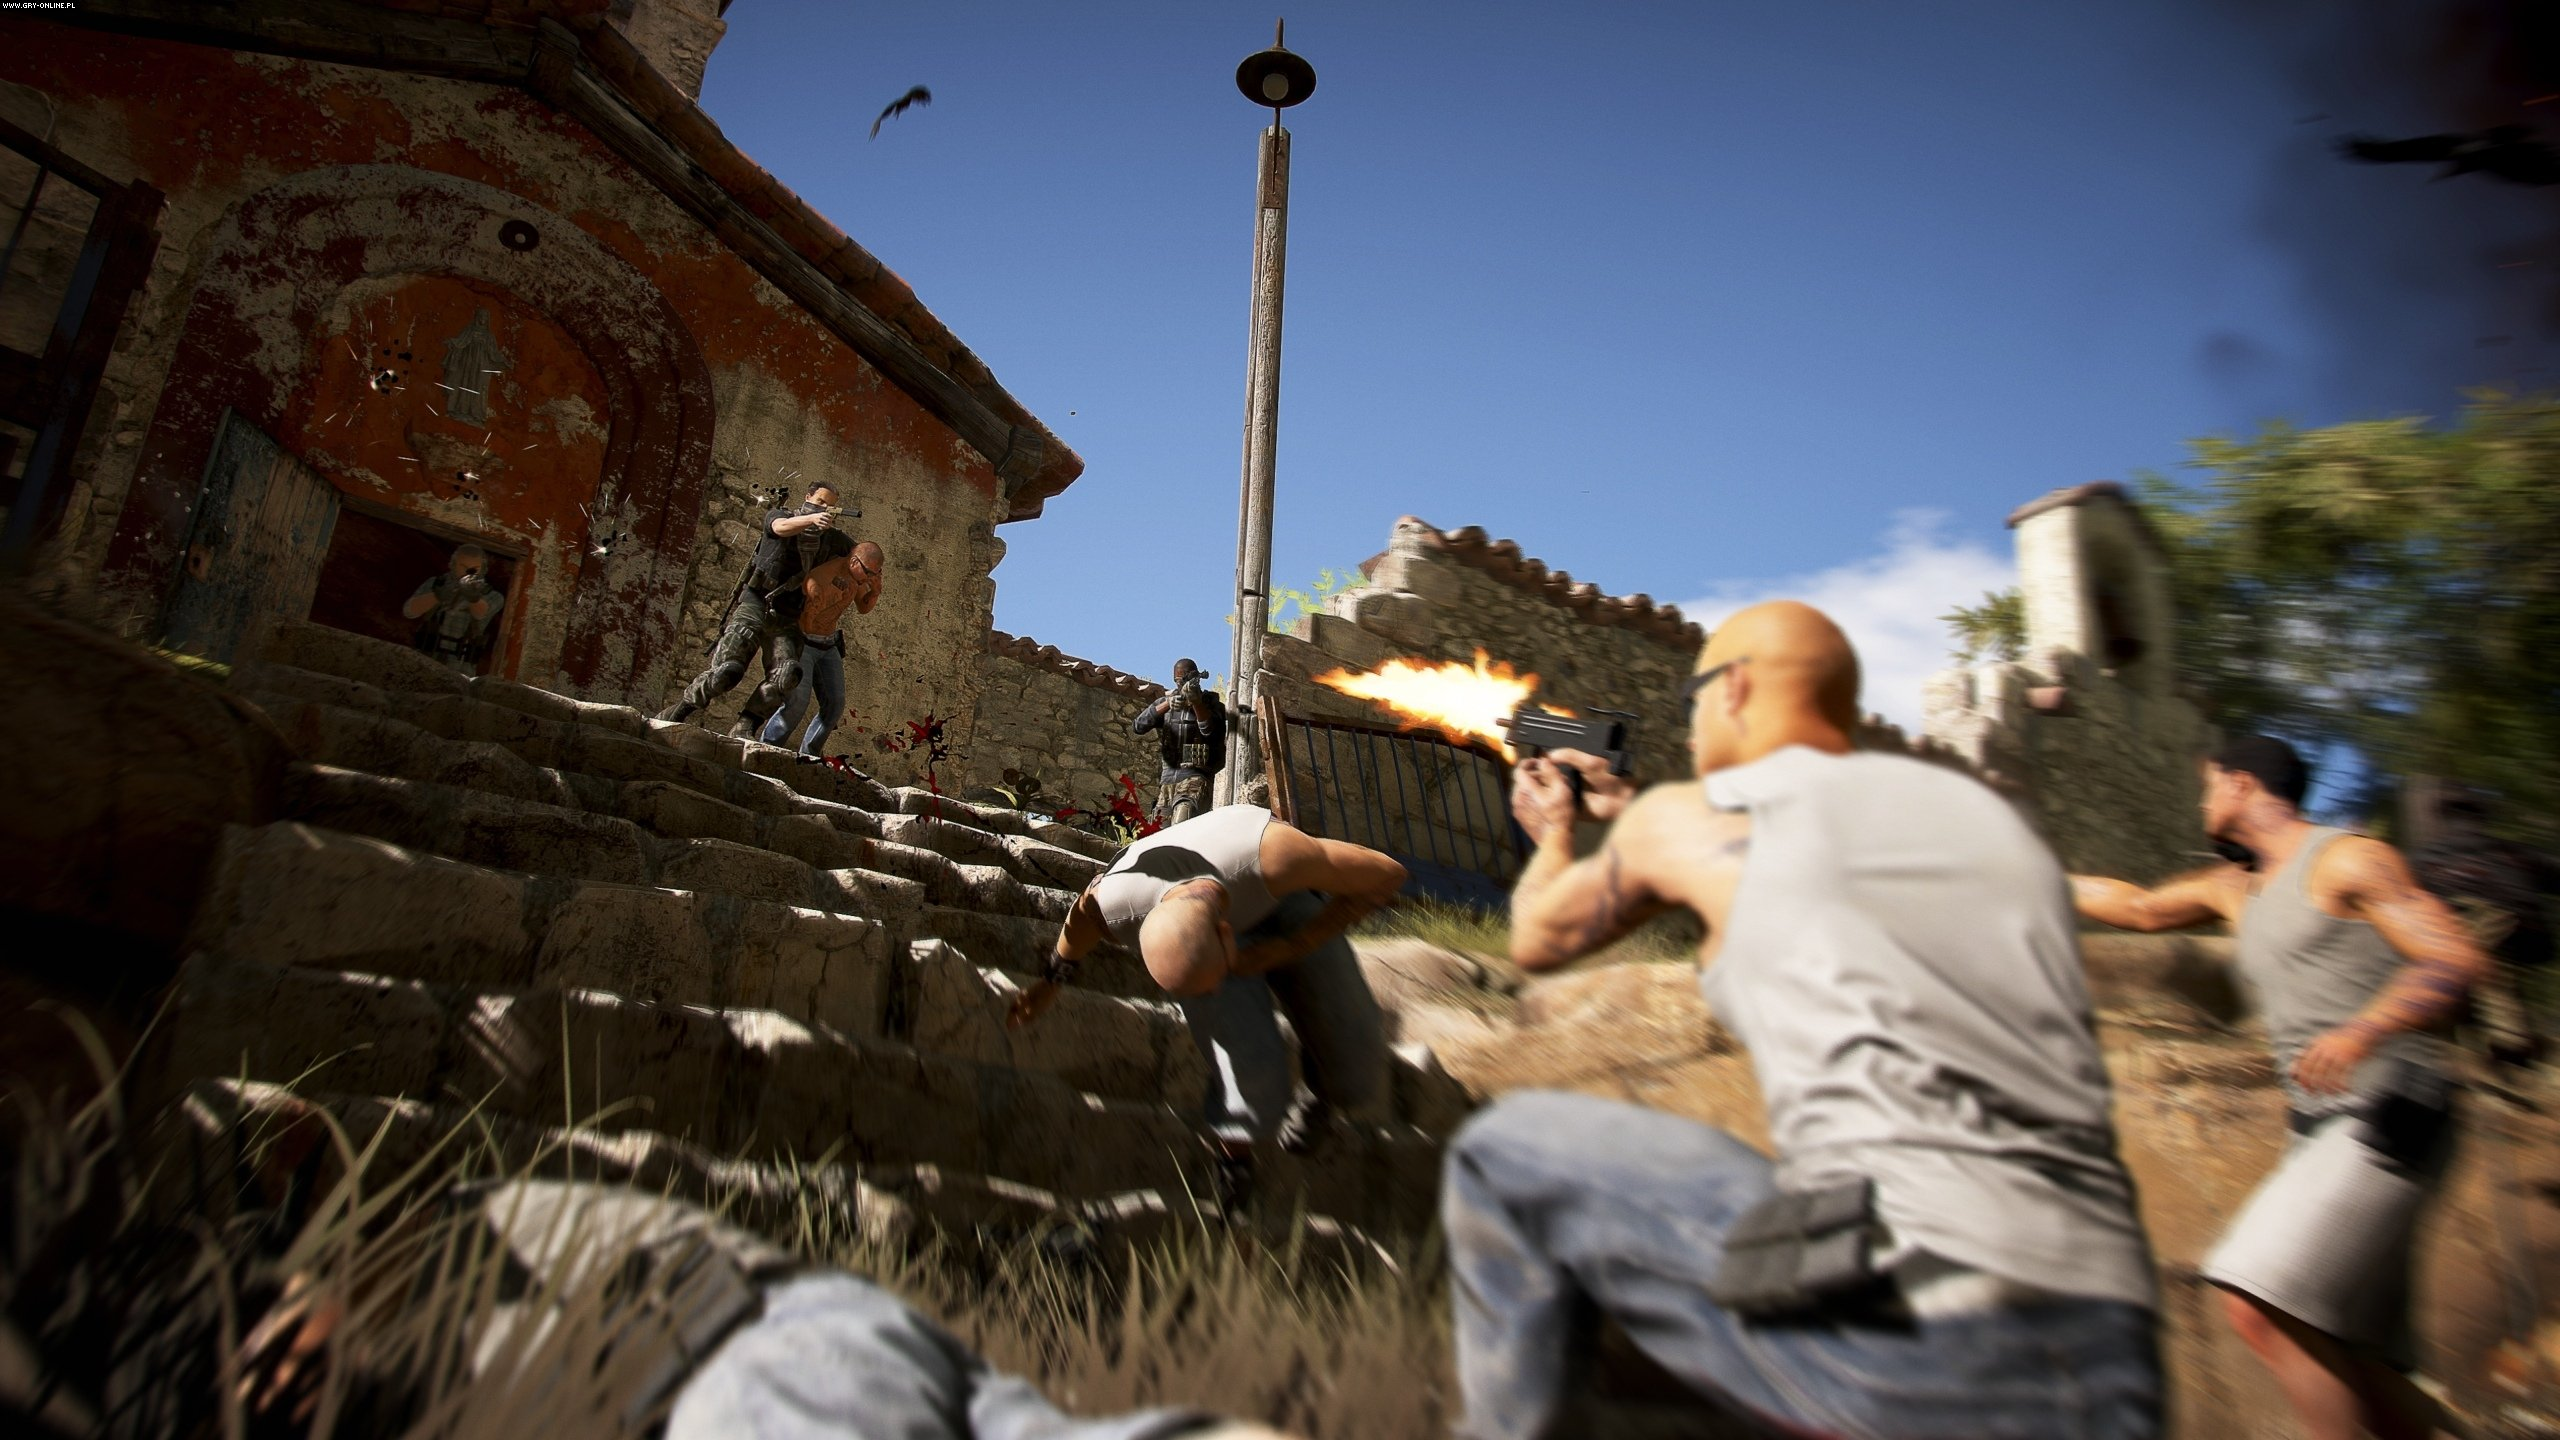 Tom Clancy's Ghost Recon: Wildlands PC, PS4, XONE Games Image 5/25, Ubisoft Studios, Ubisoft